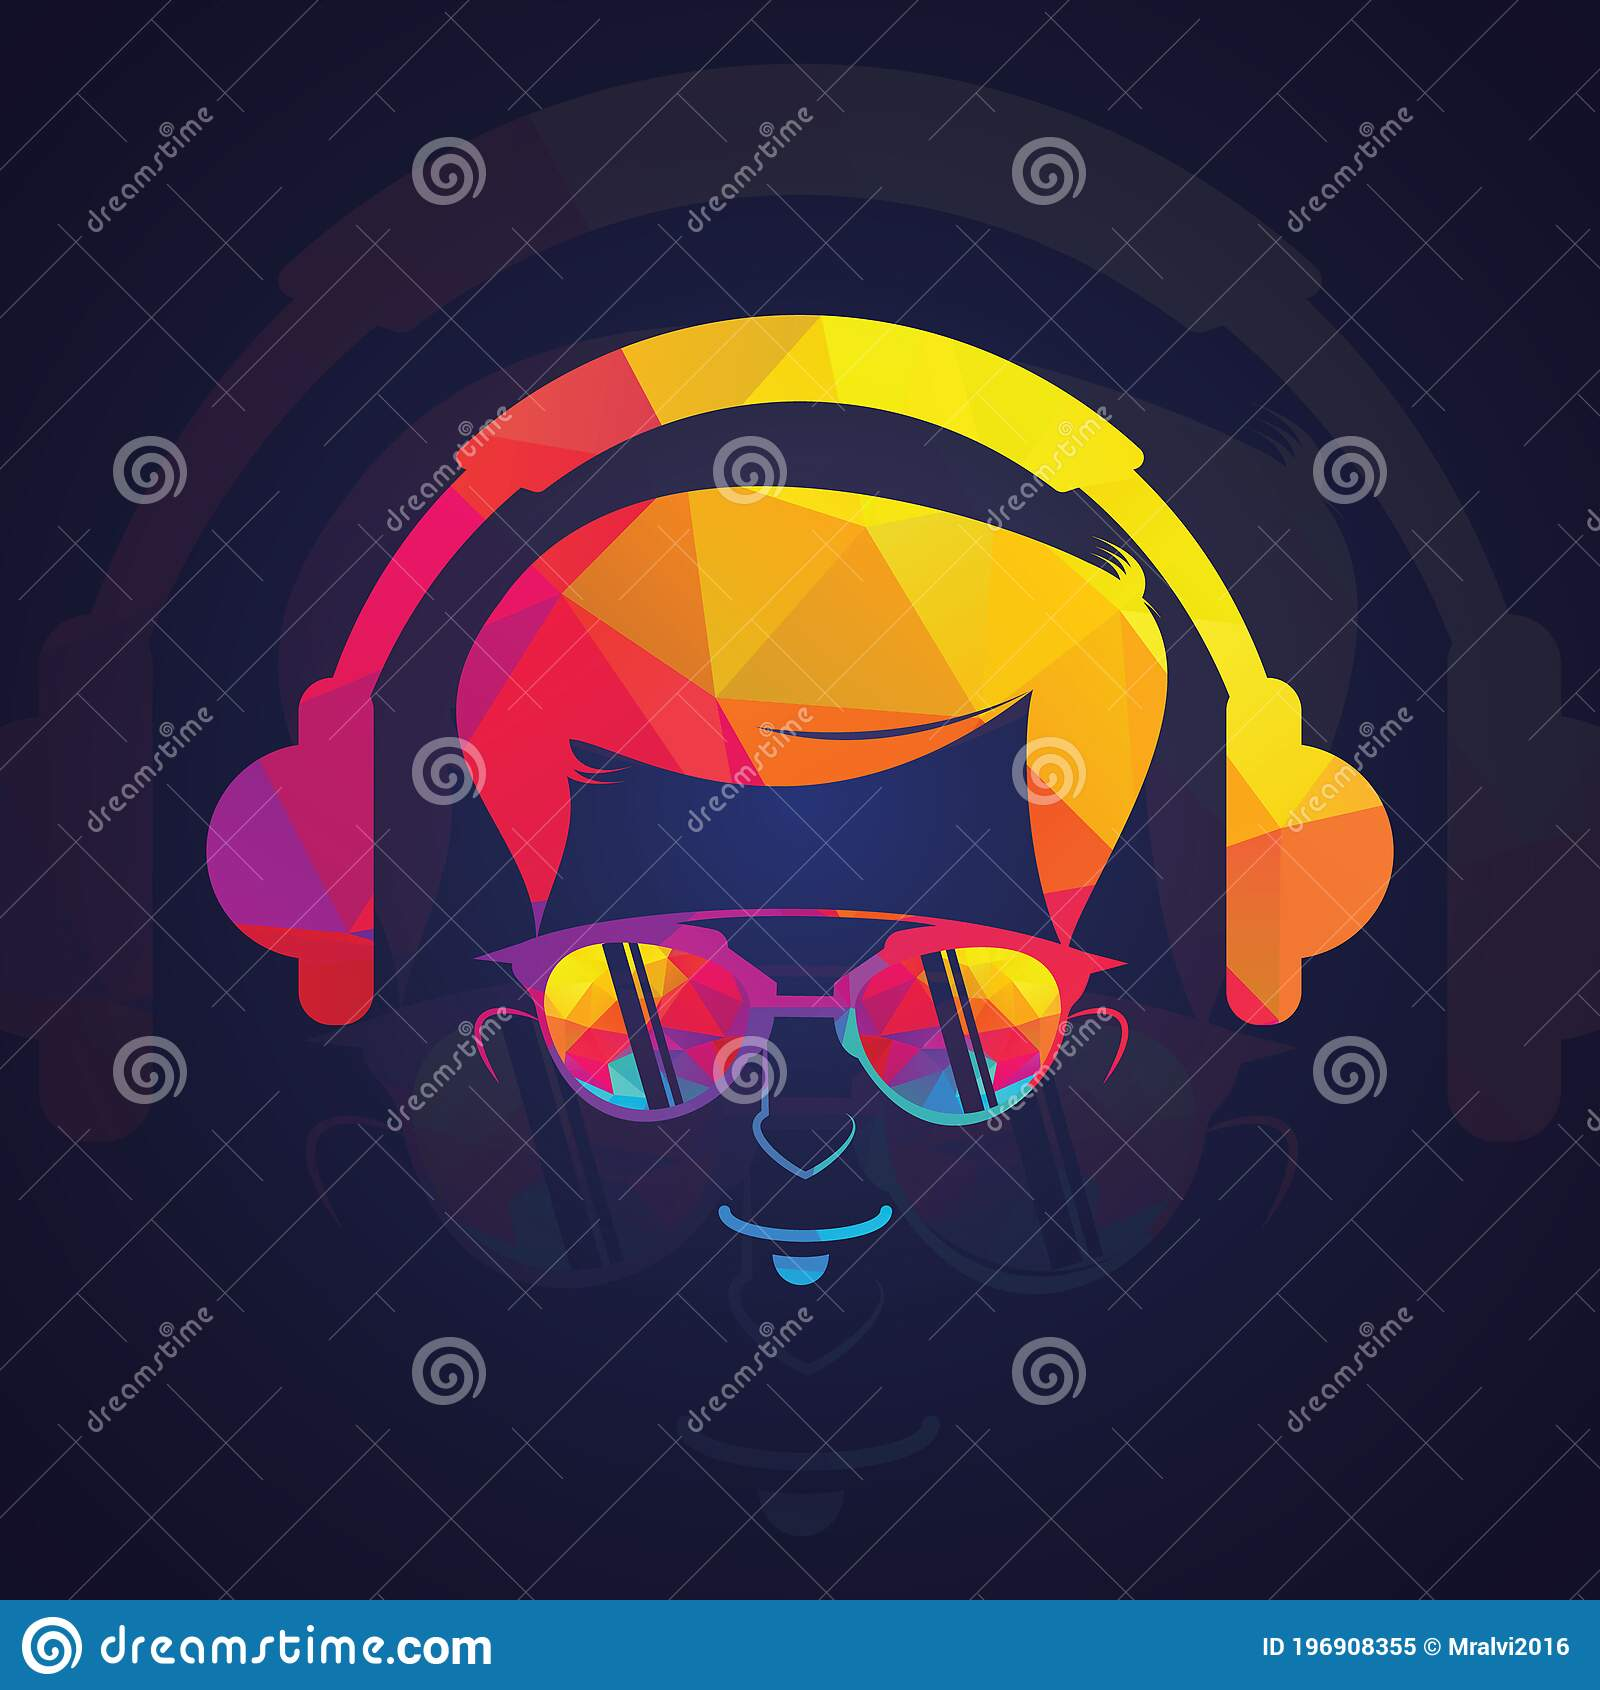 Gamer With Glasses Gaming Logo Illustration Vector On White Background Stock Vector Illustration Of Geek Communication 196908355